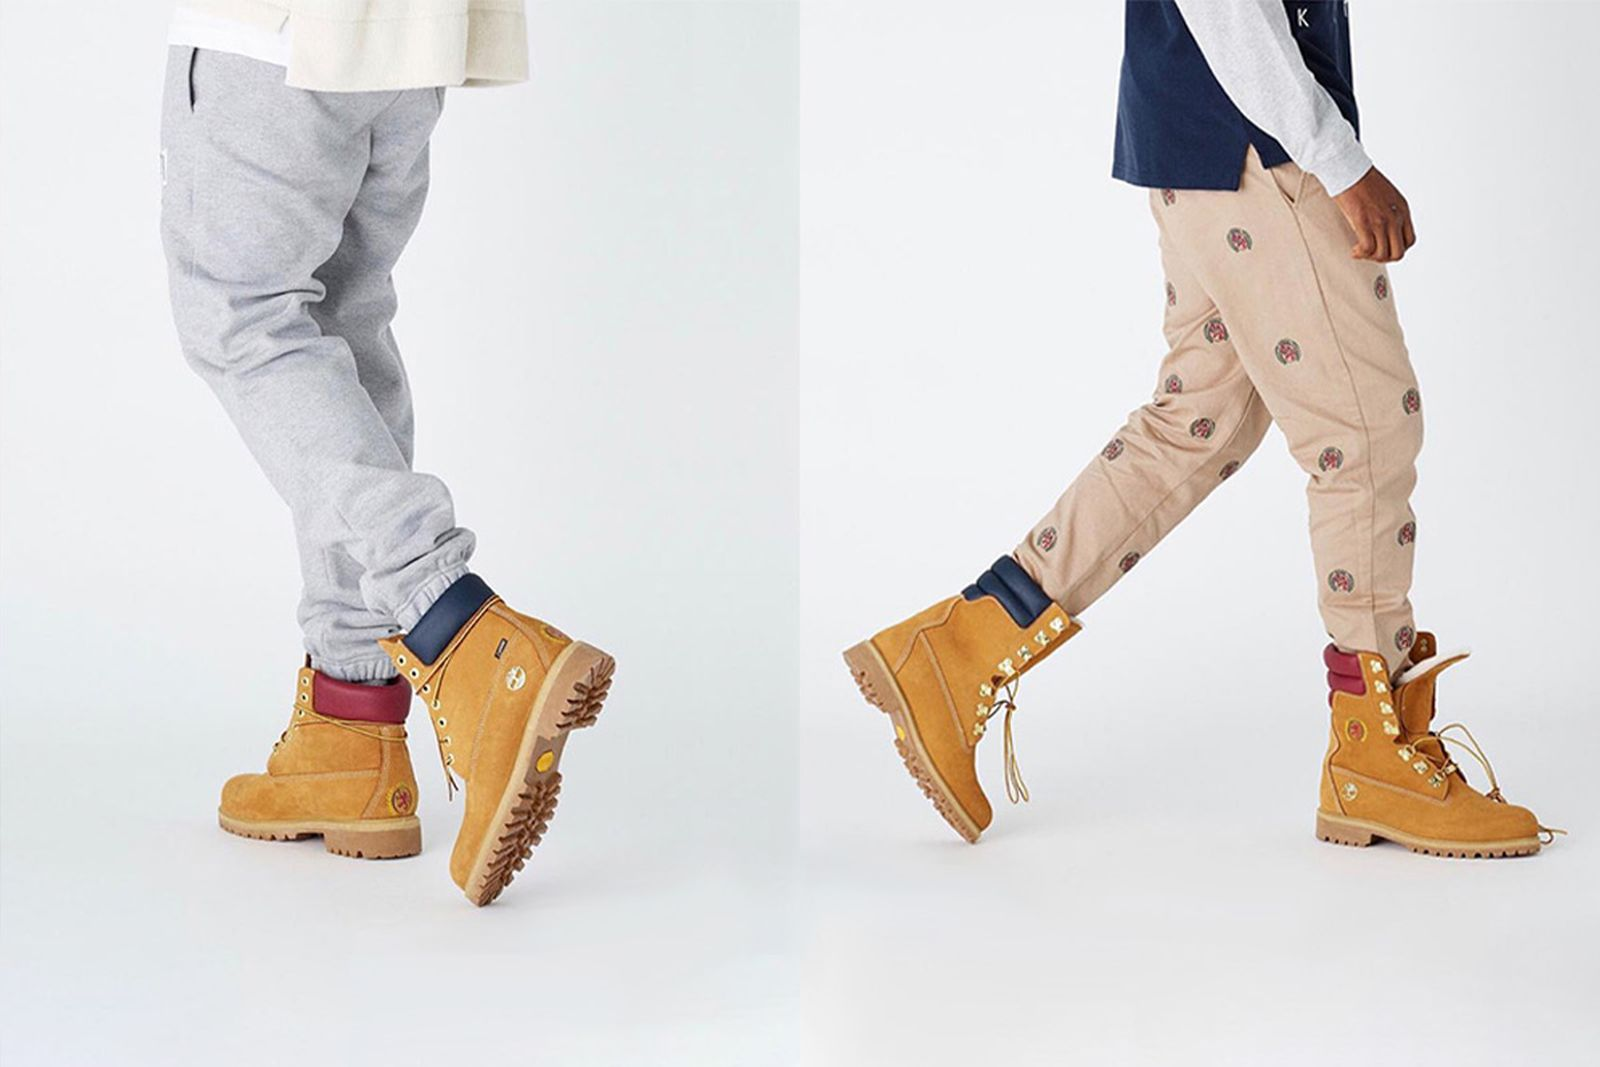 KITH tommy hilfiger timberland fw18 boots kith x tommy hilfiger